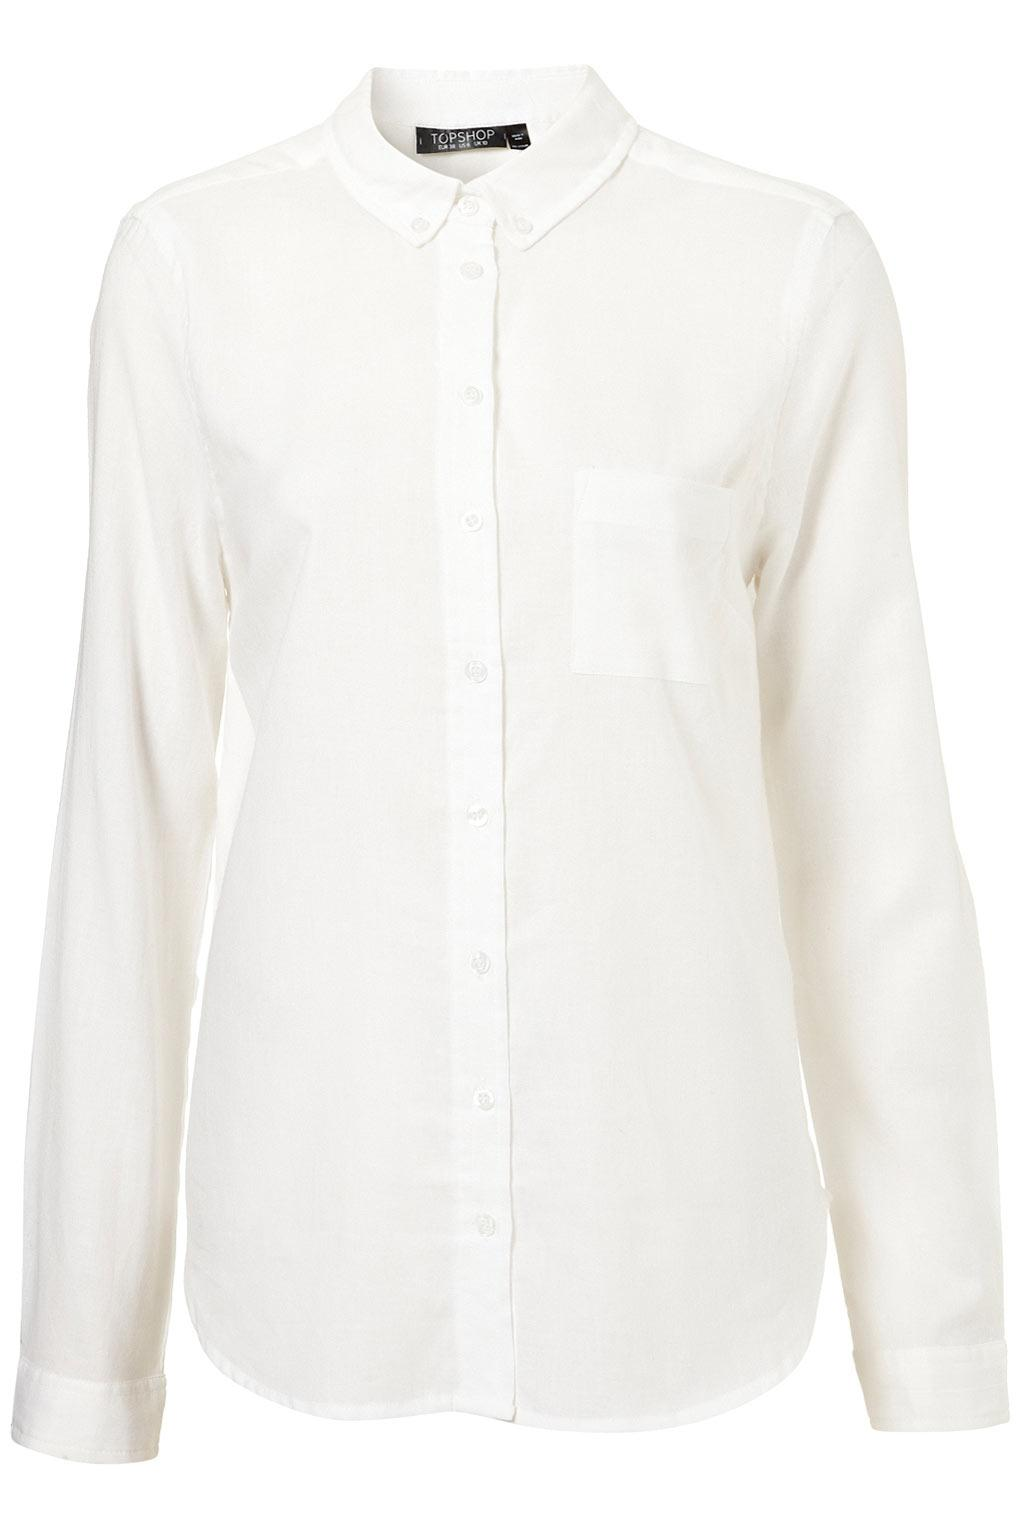 Longsleeve Casual Shirt - Blouses & Shirts - Tops - Clothing - Topshop